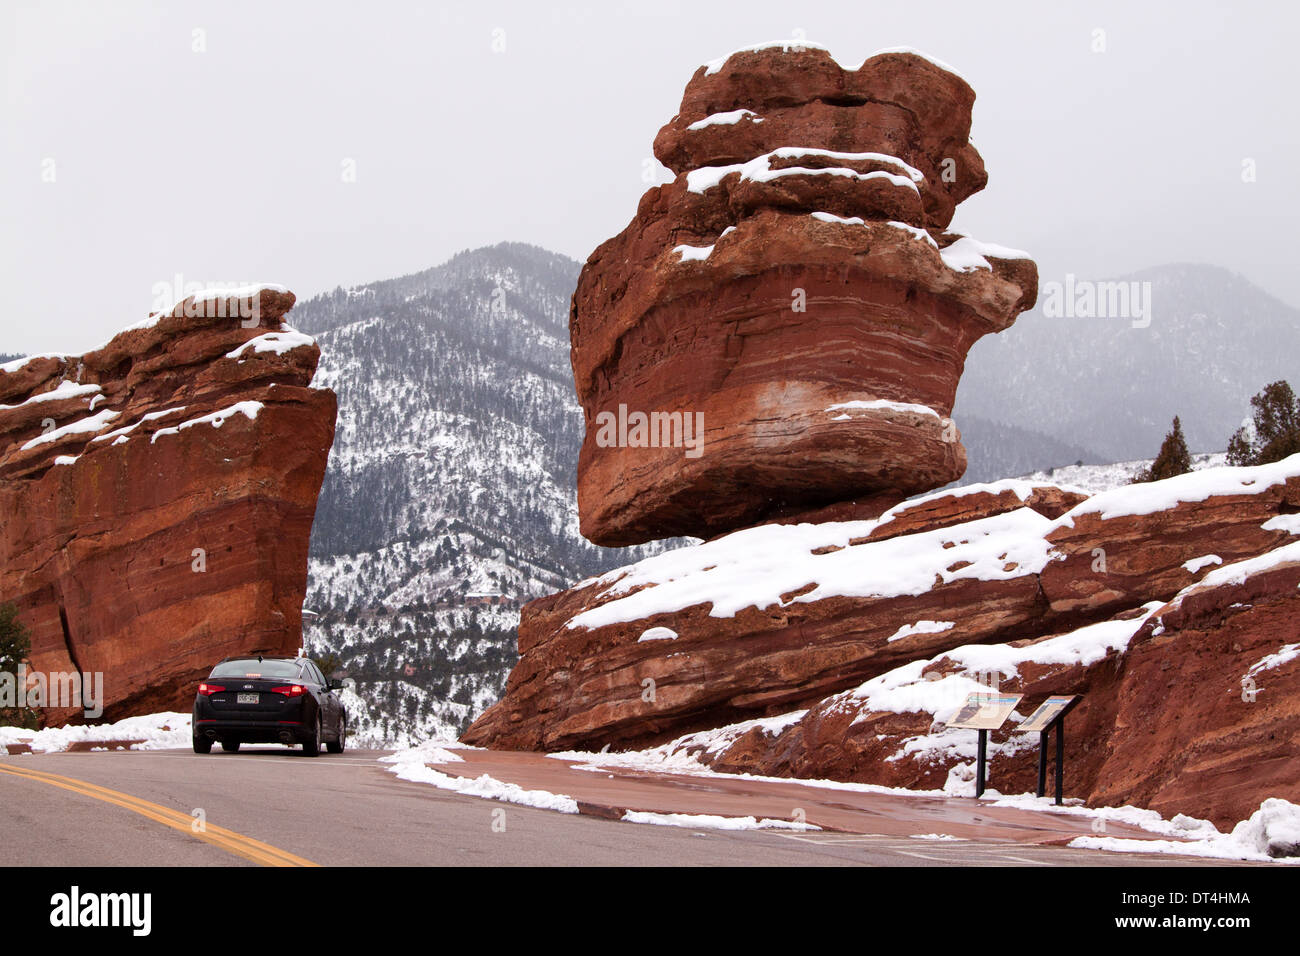 steamboat rock and balanced rock in garden of the gods park